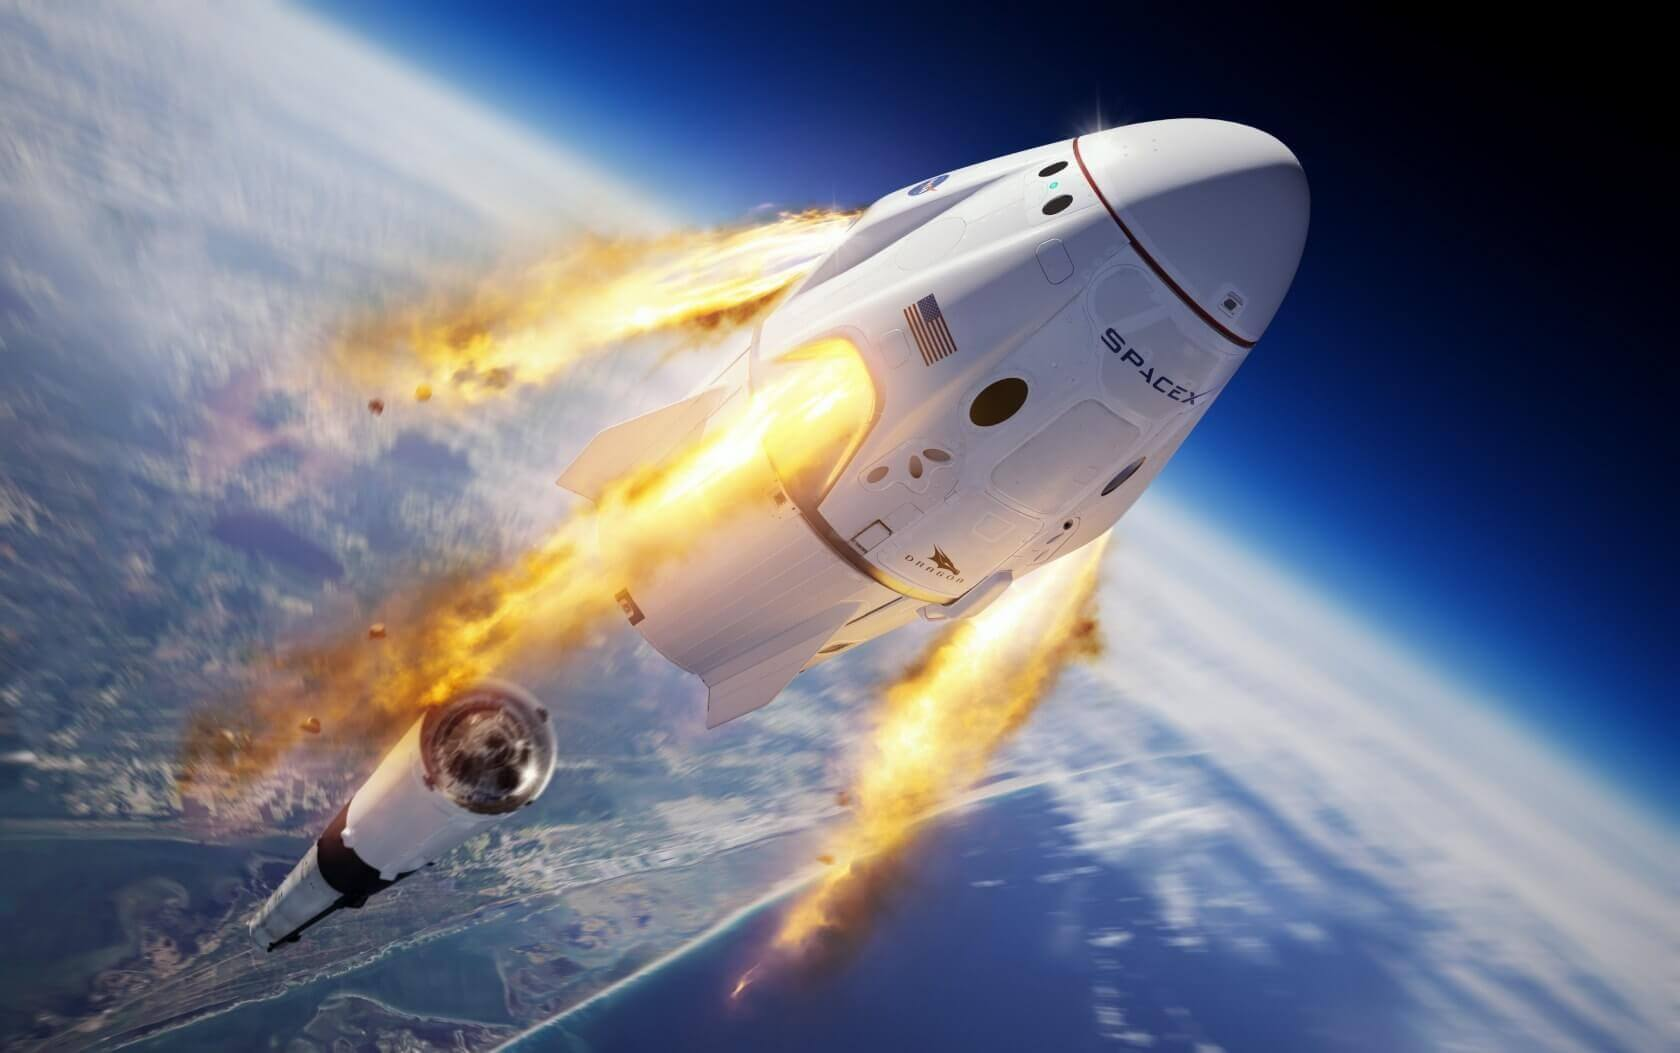 Report: SpaceX and Tom Cruise planning an outer space movie shoot